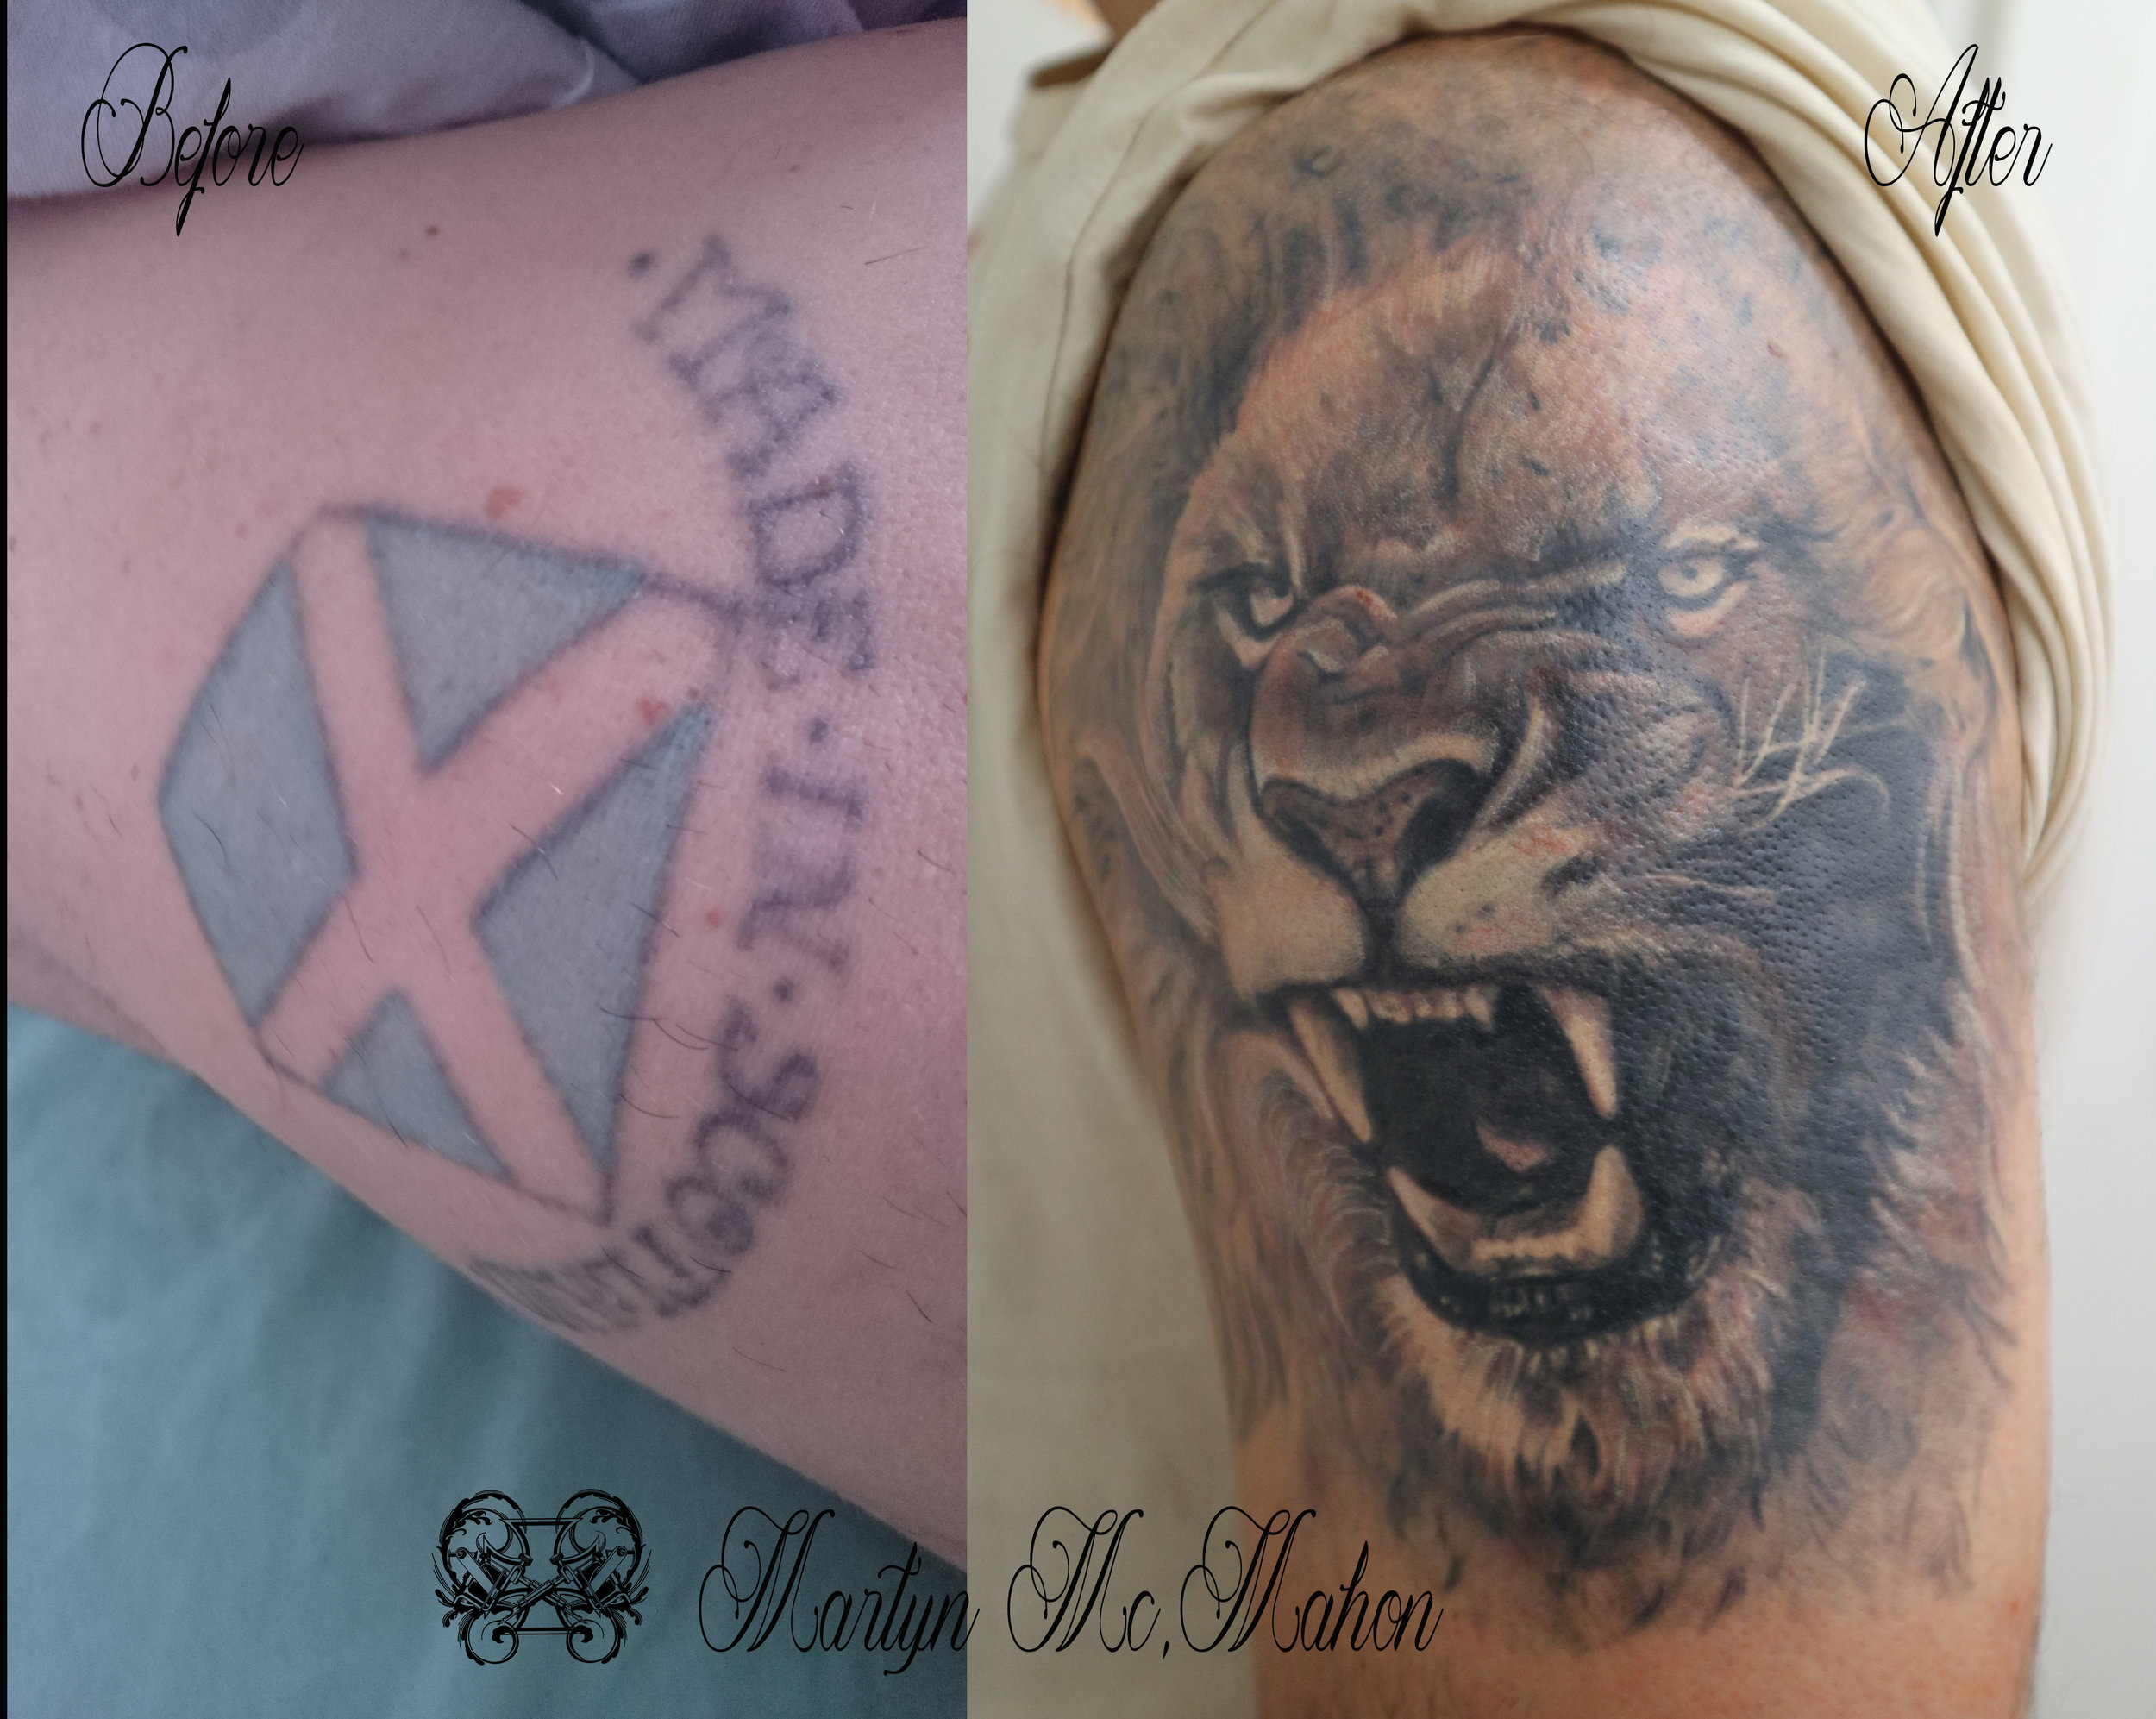 Martyn - Saltire Lion cover up.jpg